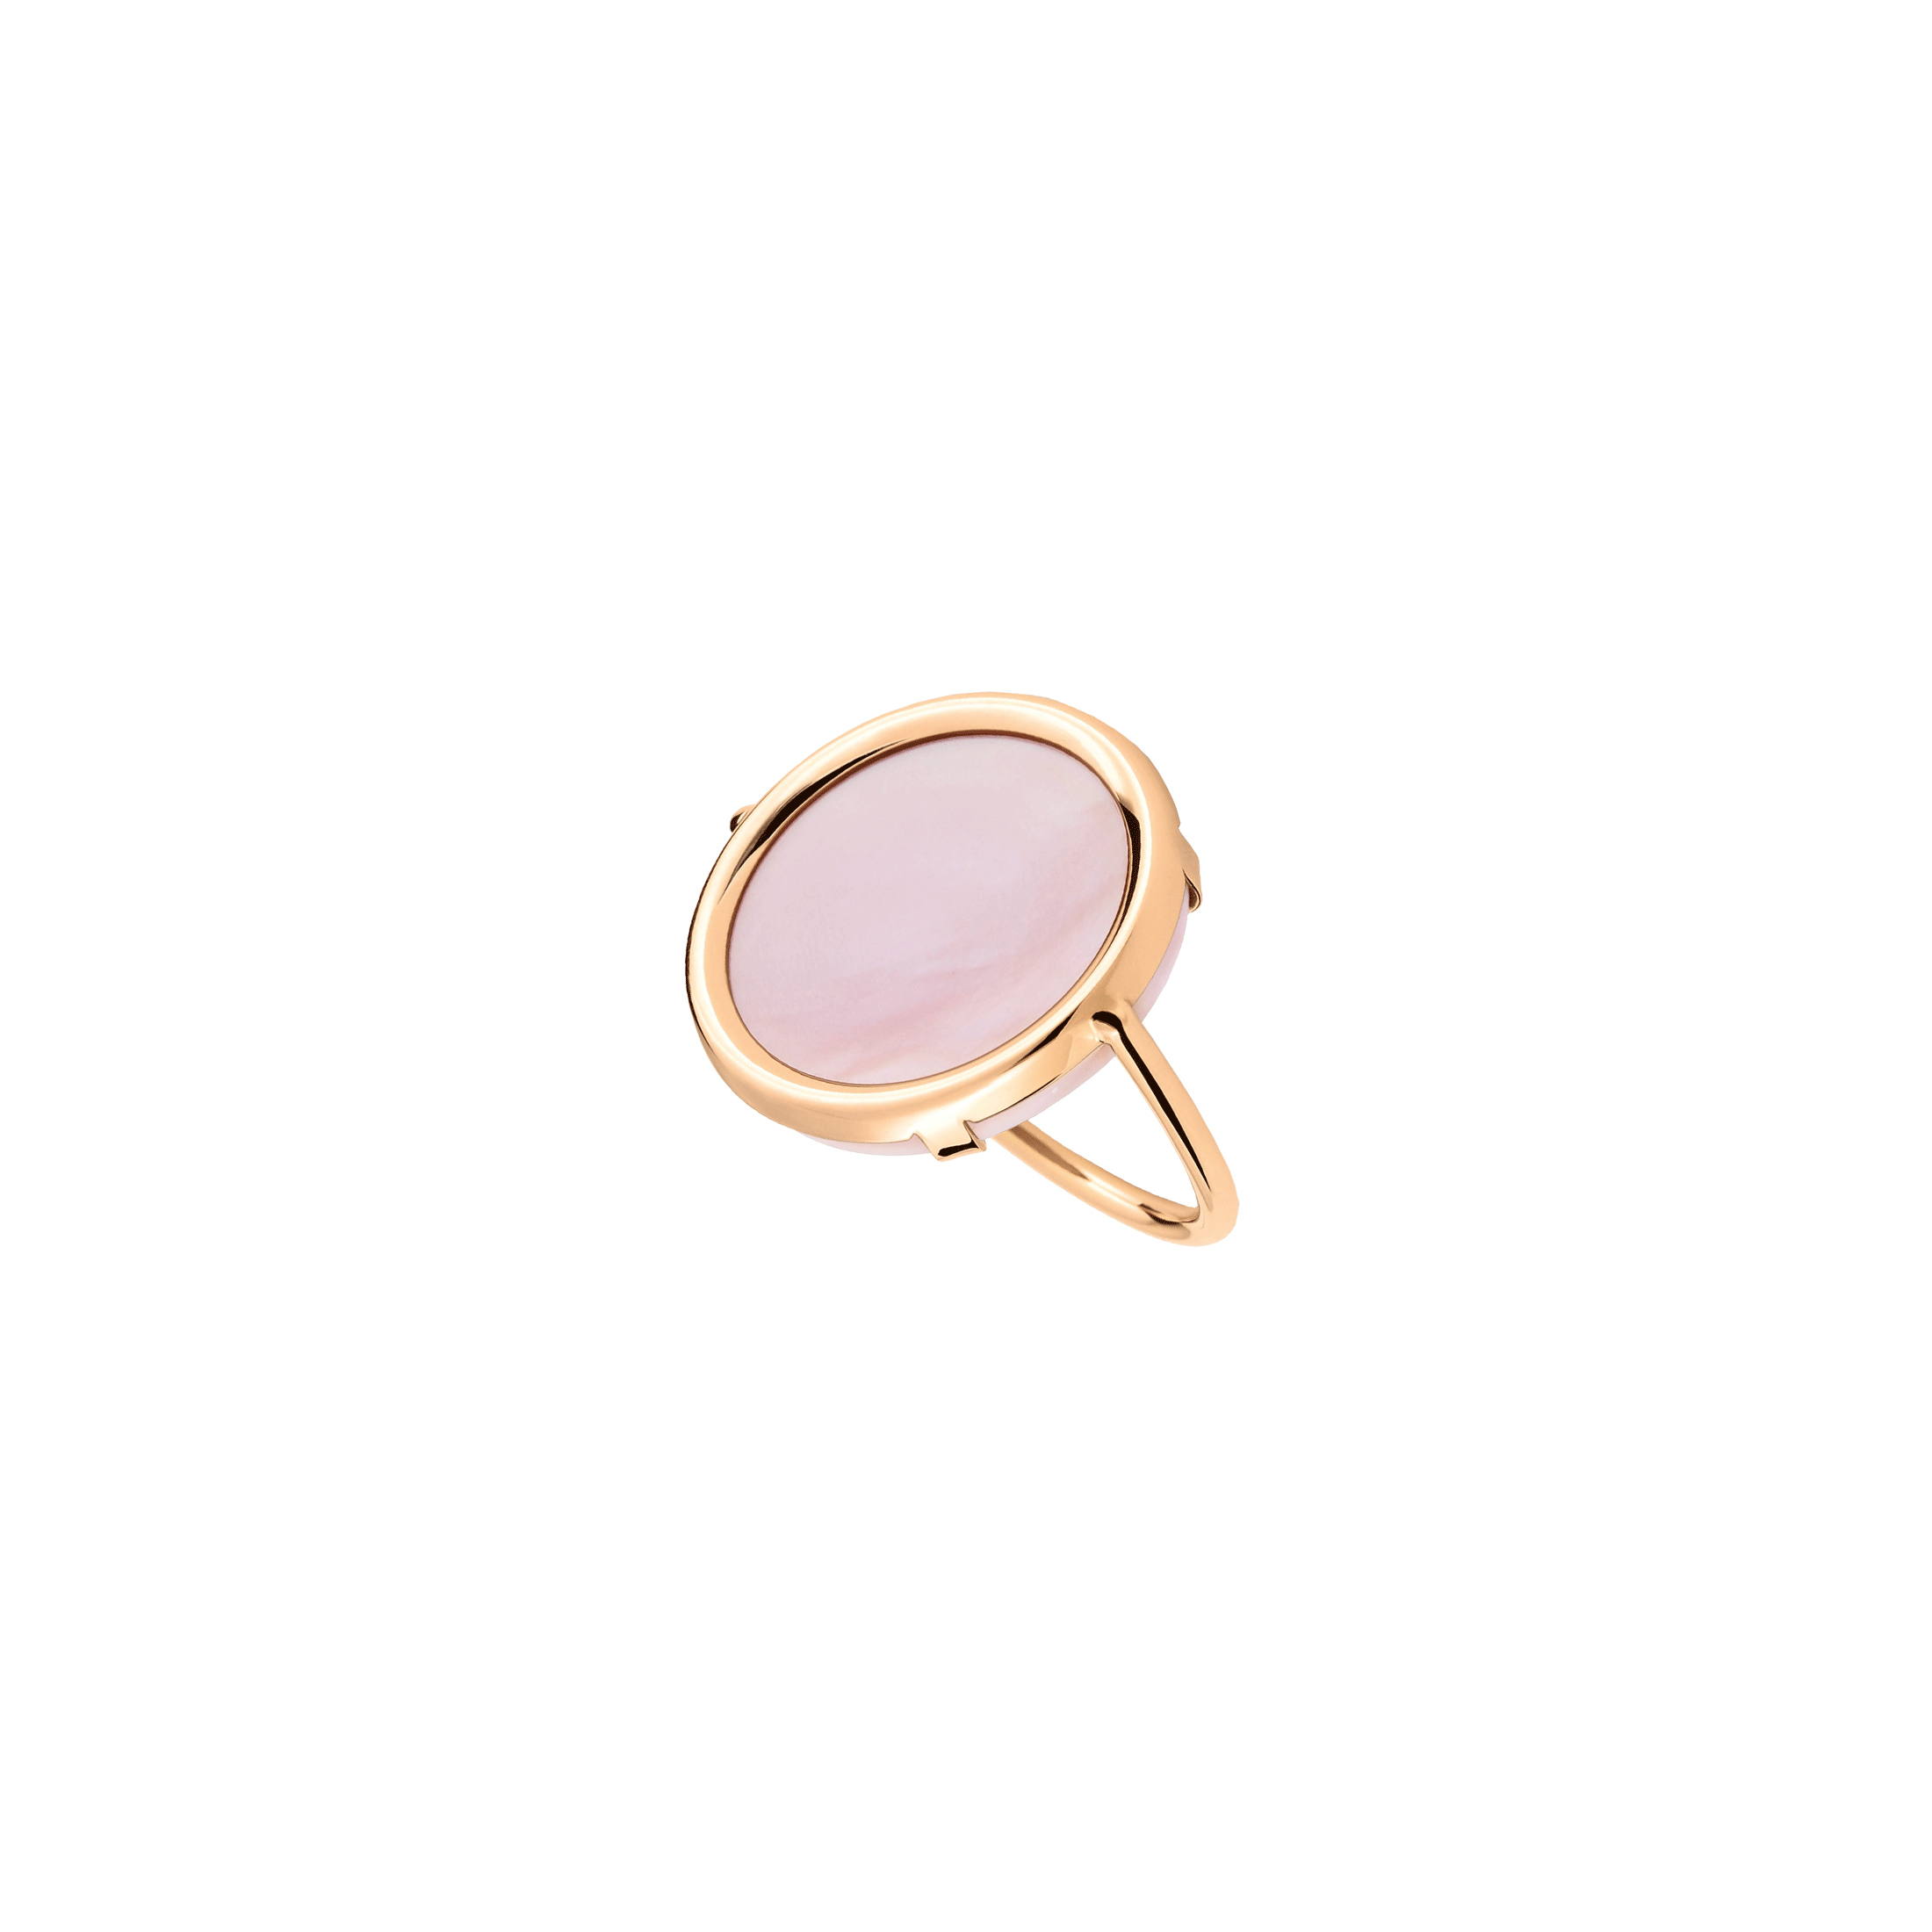 Bague Ginette NY Disc en or rose et nacre rose